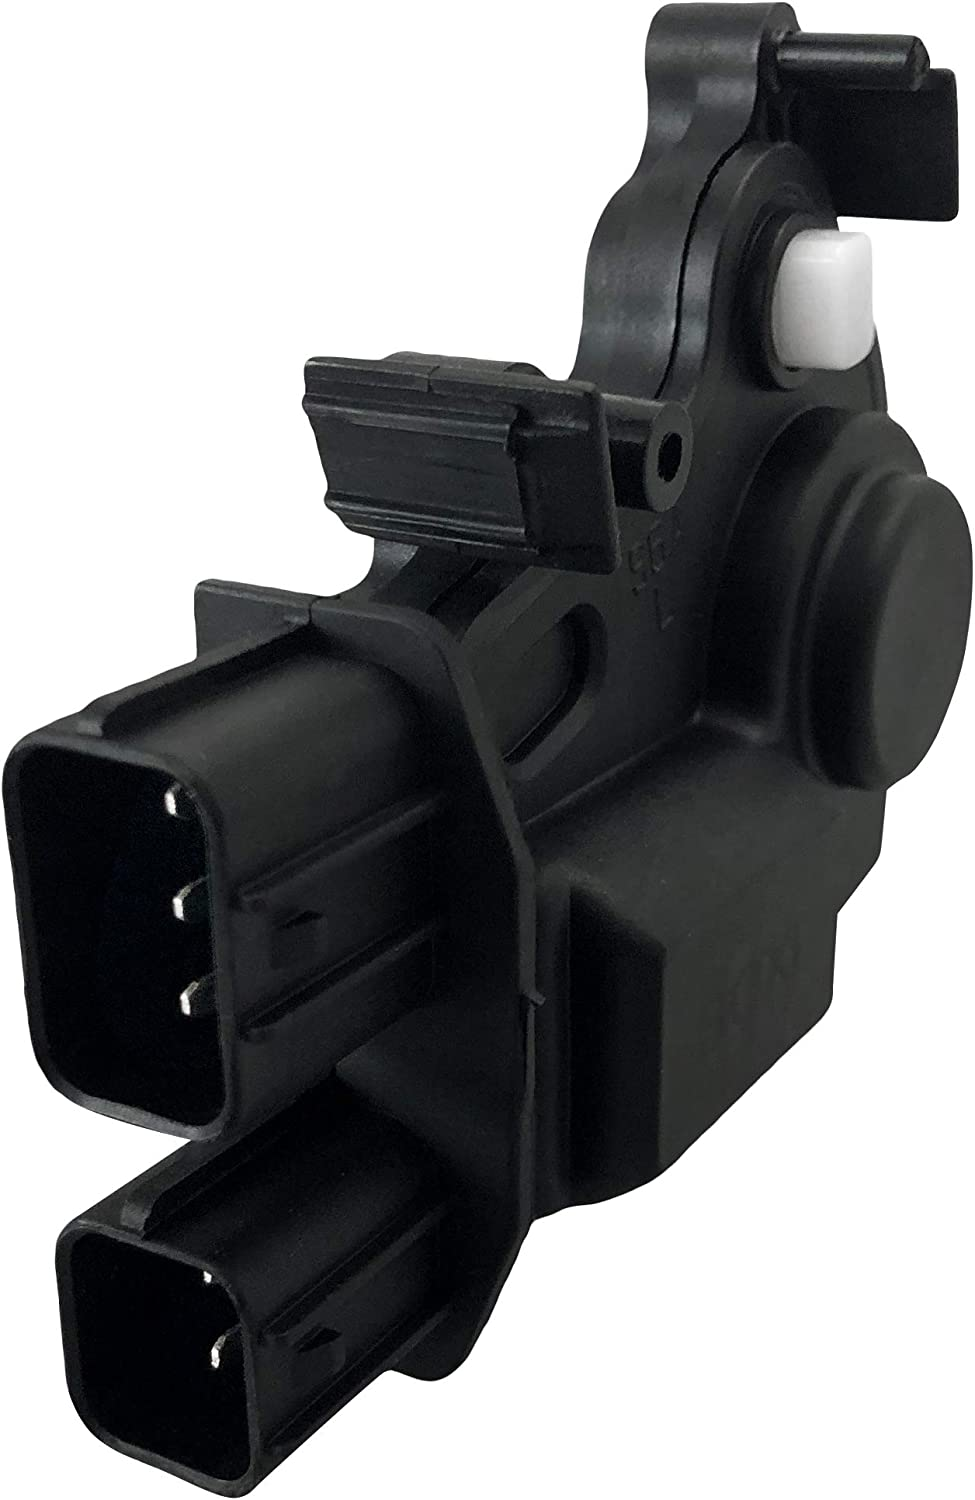 BOXI Door Latch /& Lock Actuator Front//Rear Left Driver Side for Honda Accord Civic CR-V Element Odyssey Pilot Acura RSX 72155-S5P-A11 72155-S6A-J11